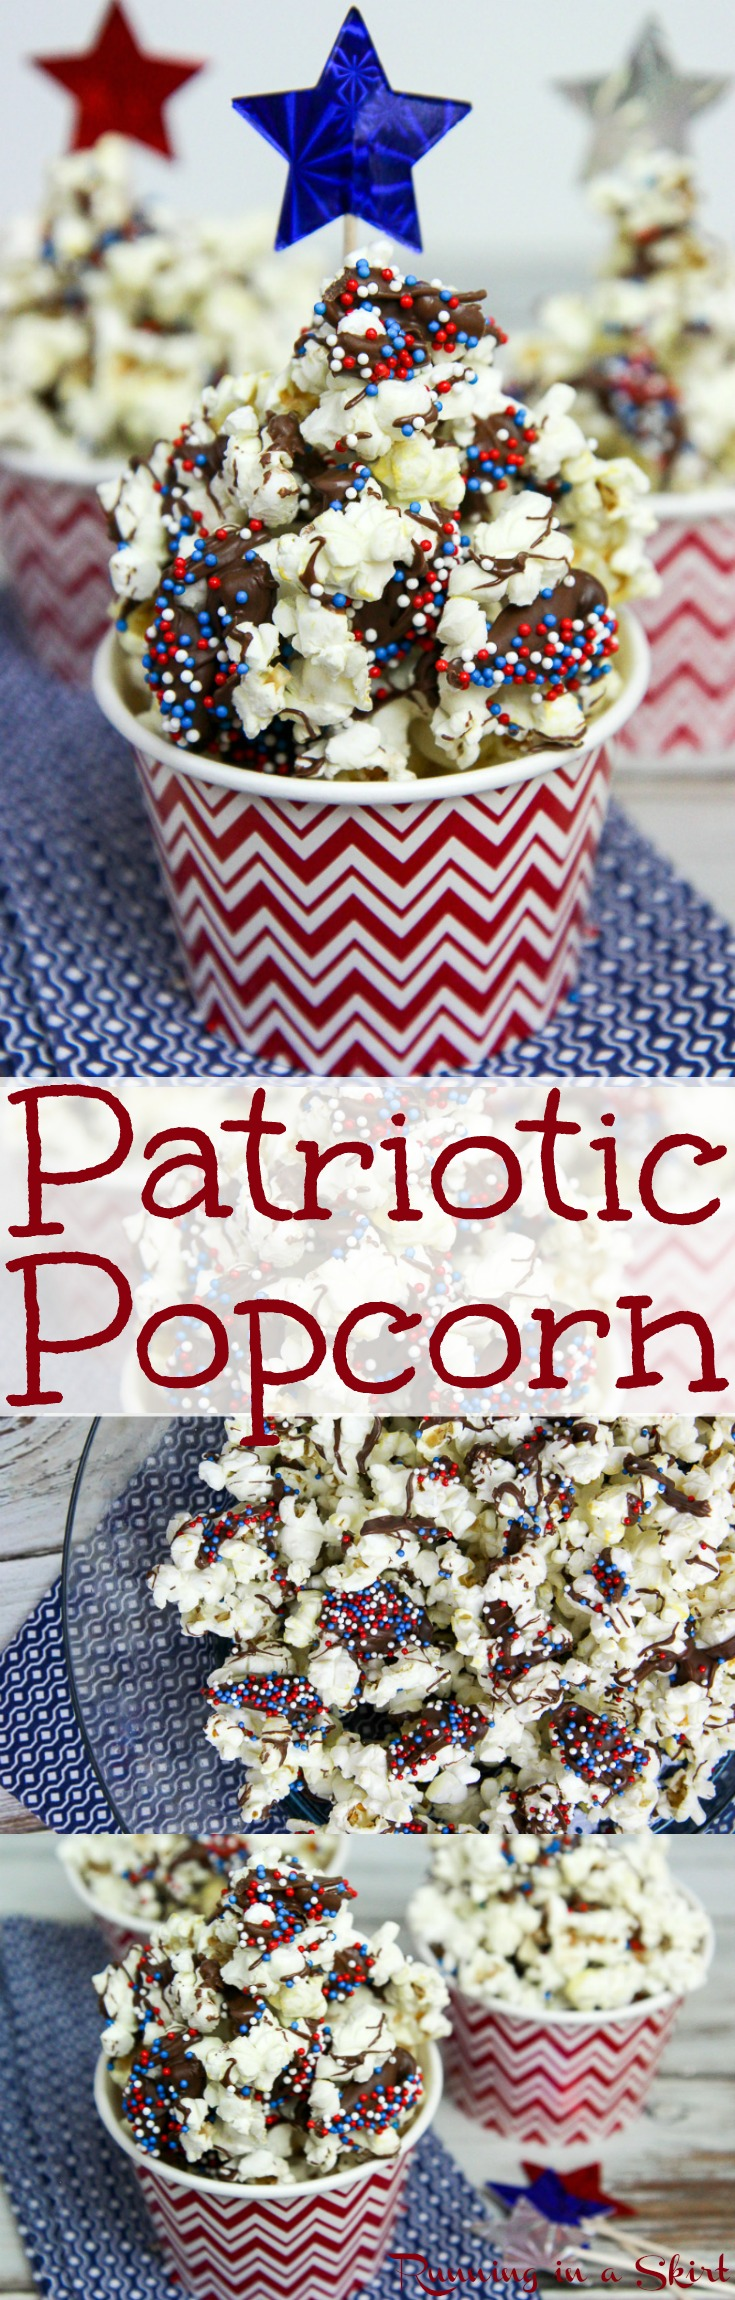 3 Ingredient Dark Chocolate Patriotic Popcorn recipe.  A fun red, white and blue food idea for 4th of July.  The perfect semi healthy holiday treat.  Easy DIY make ahead for kids or for a crowd.  Simple, inexpensive, creative and cute for movie night or an edible gift! / Running in a Skirt via @juliewunder